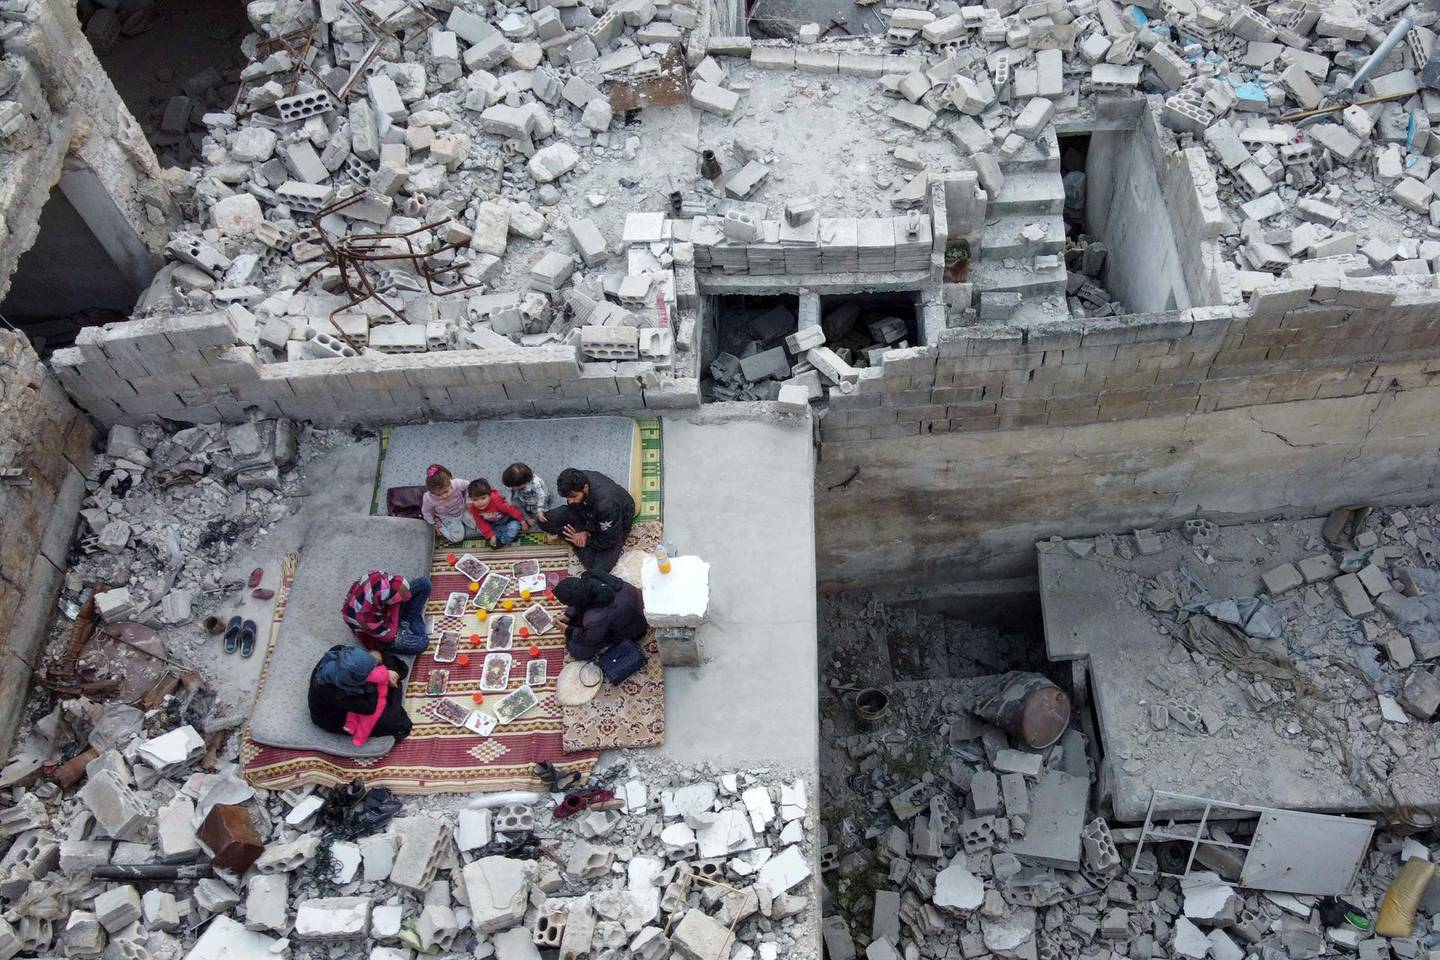 """This picture taken on May 4, 2020 during the Muslim holy fasting month of Ramadan shows an aerial view of members of the displaced Syrian family of Tariq Abu Ziad, from the town of Ariha in the southern countryside of the Idlib province, breaking their fast together for the sunset """"iftar"""" meal, in the midst of the rubble of their destroyed home upon their return to the town after fleeing during the previous military assault on the town by Syrian government forces and their allies.  / AFP / Aaref WATAD"""